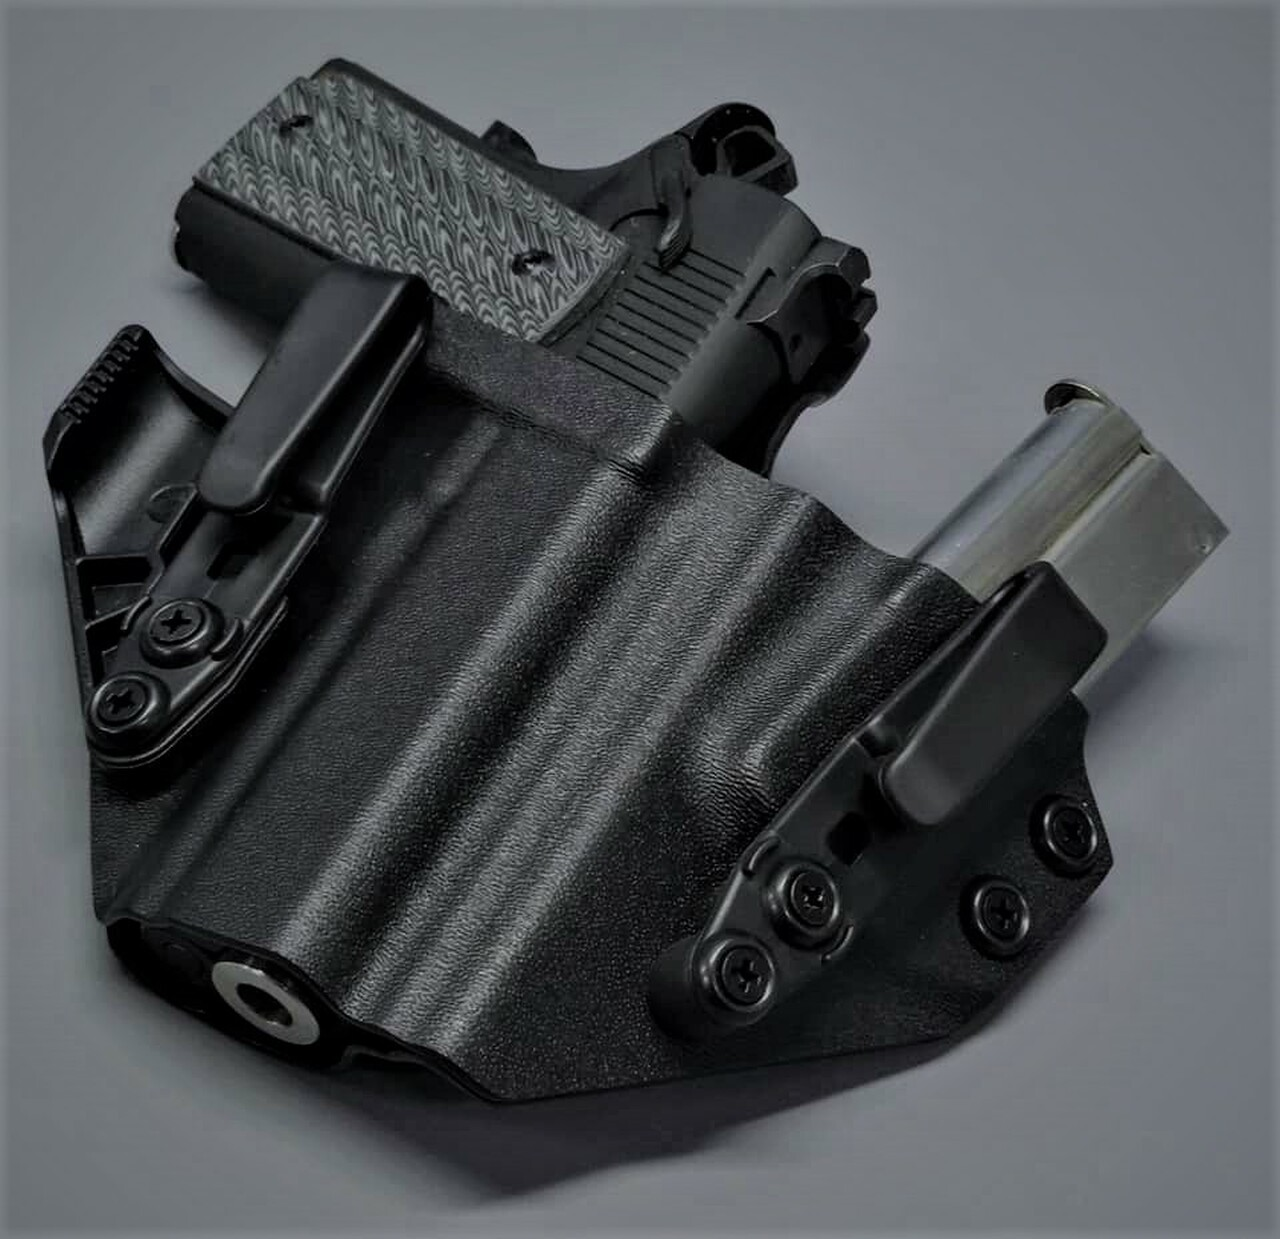 1911 Sidecar Appendix Carry Rig